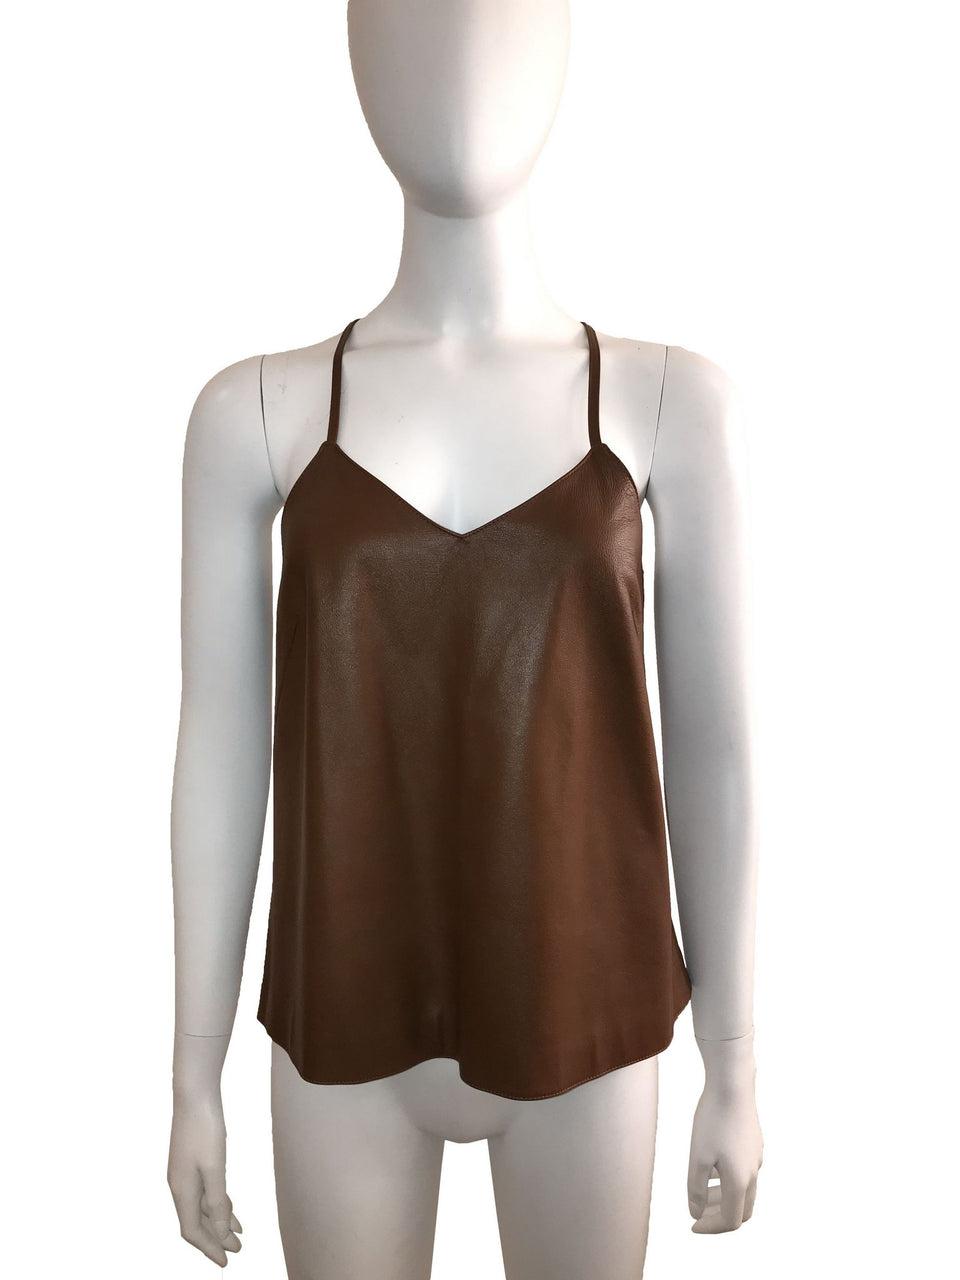 Tibi brown leather camisole